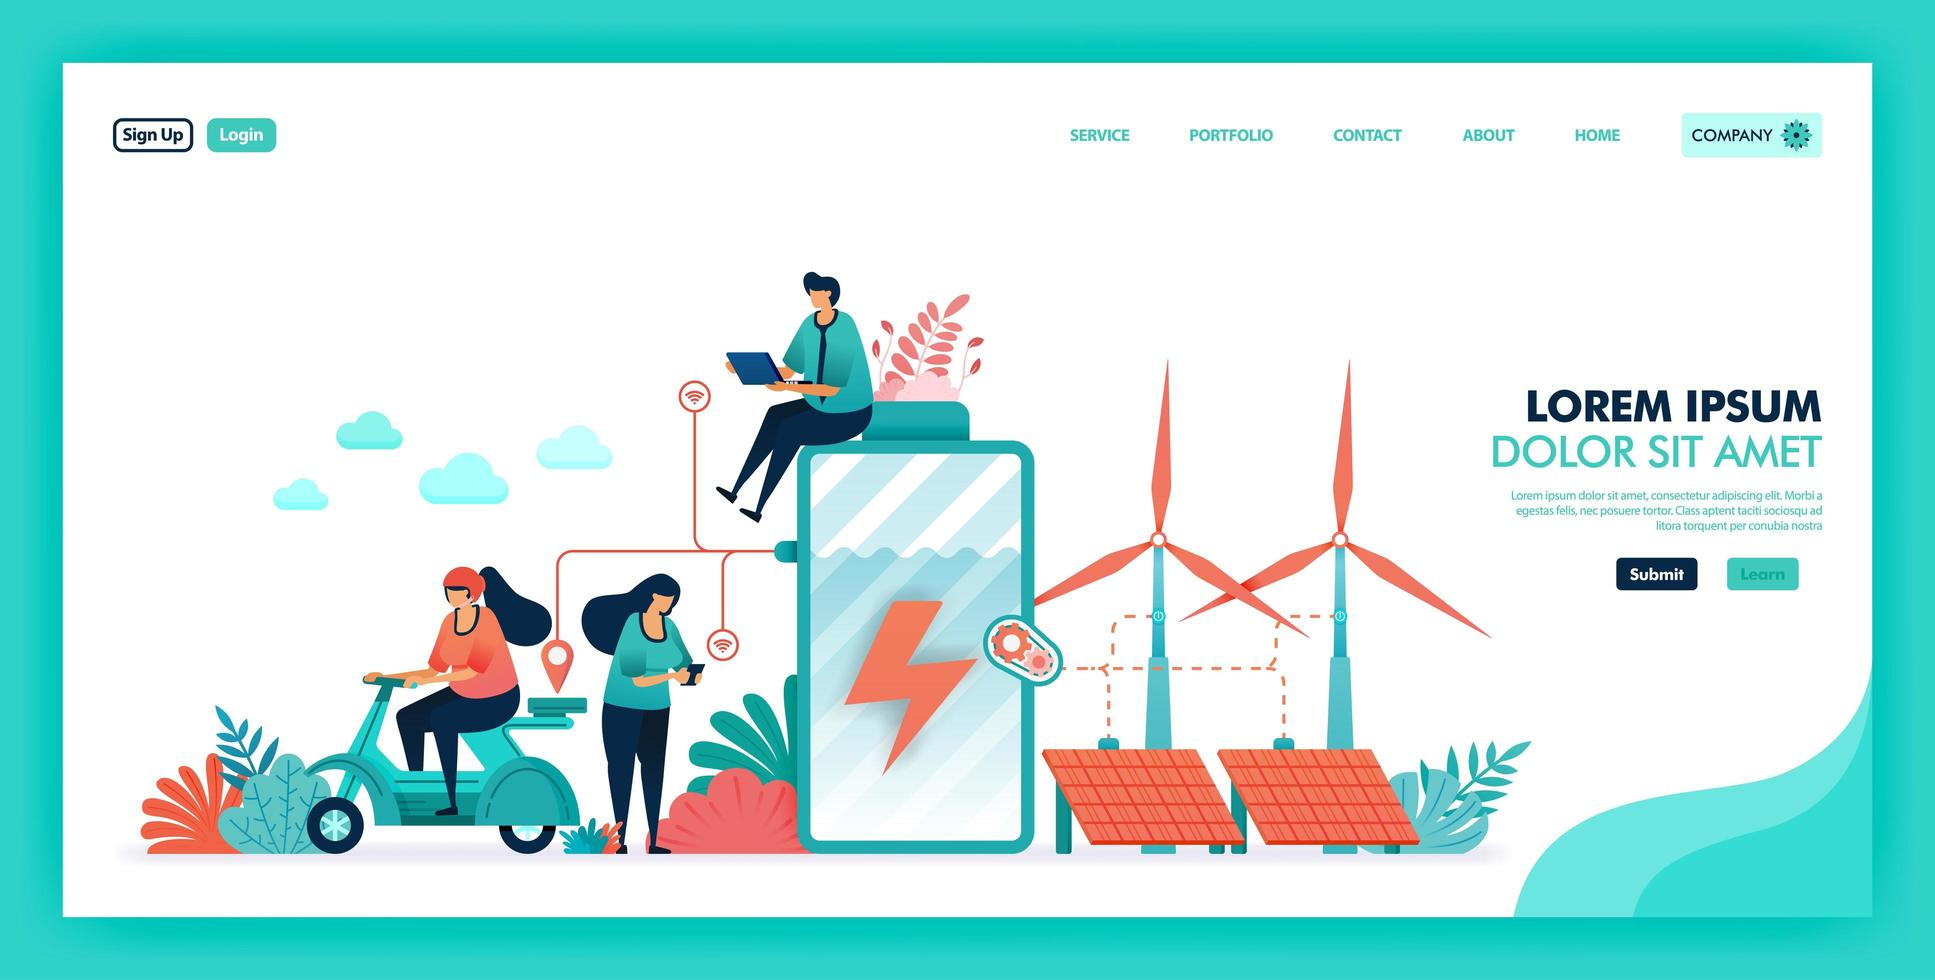 Green energy and more environmentally friendly source, Saving battery and earth with clean energy, Future smart energy with windmill, nuclear and solar panels. Flat illustration vector design concept.